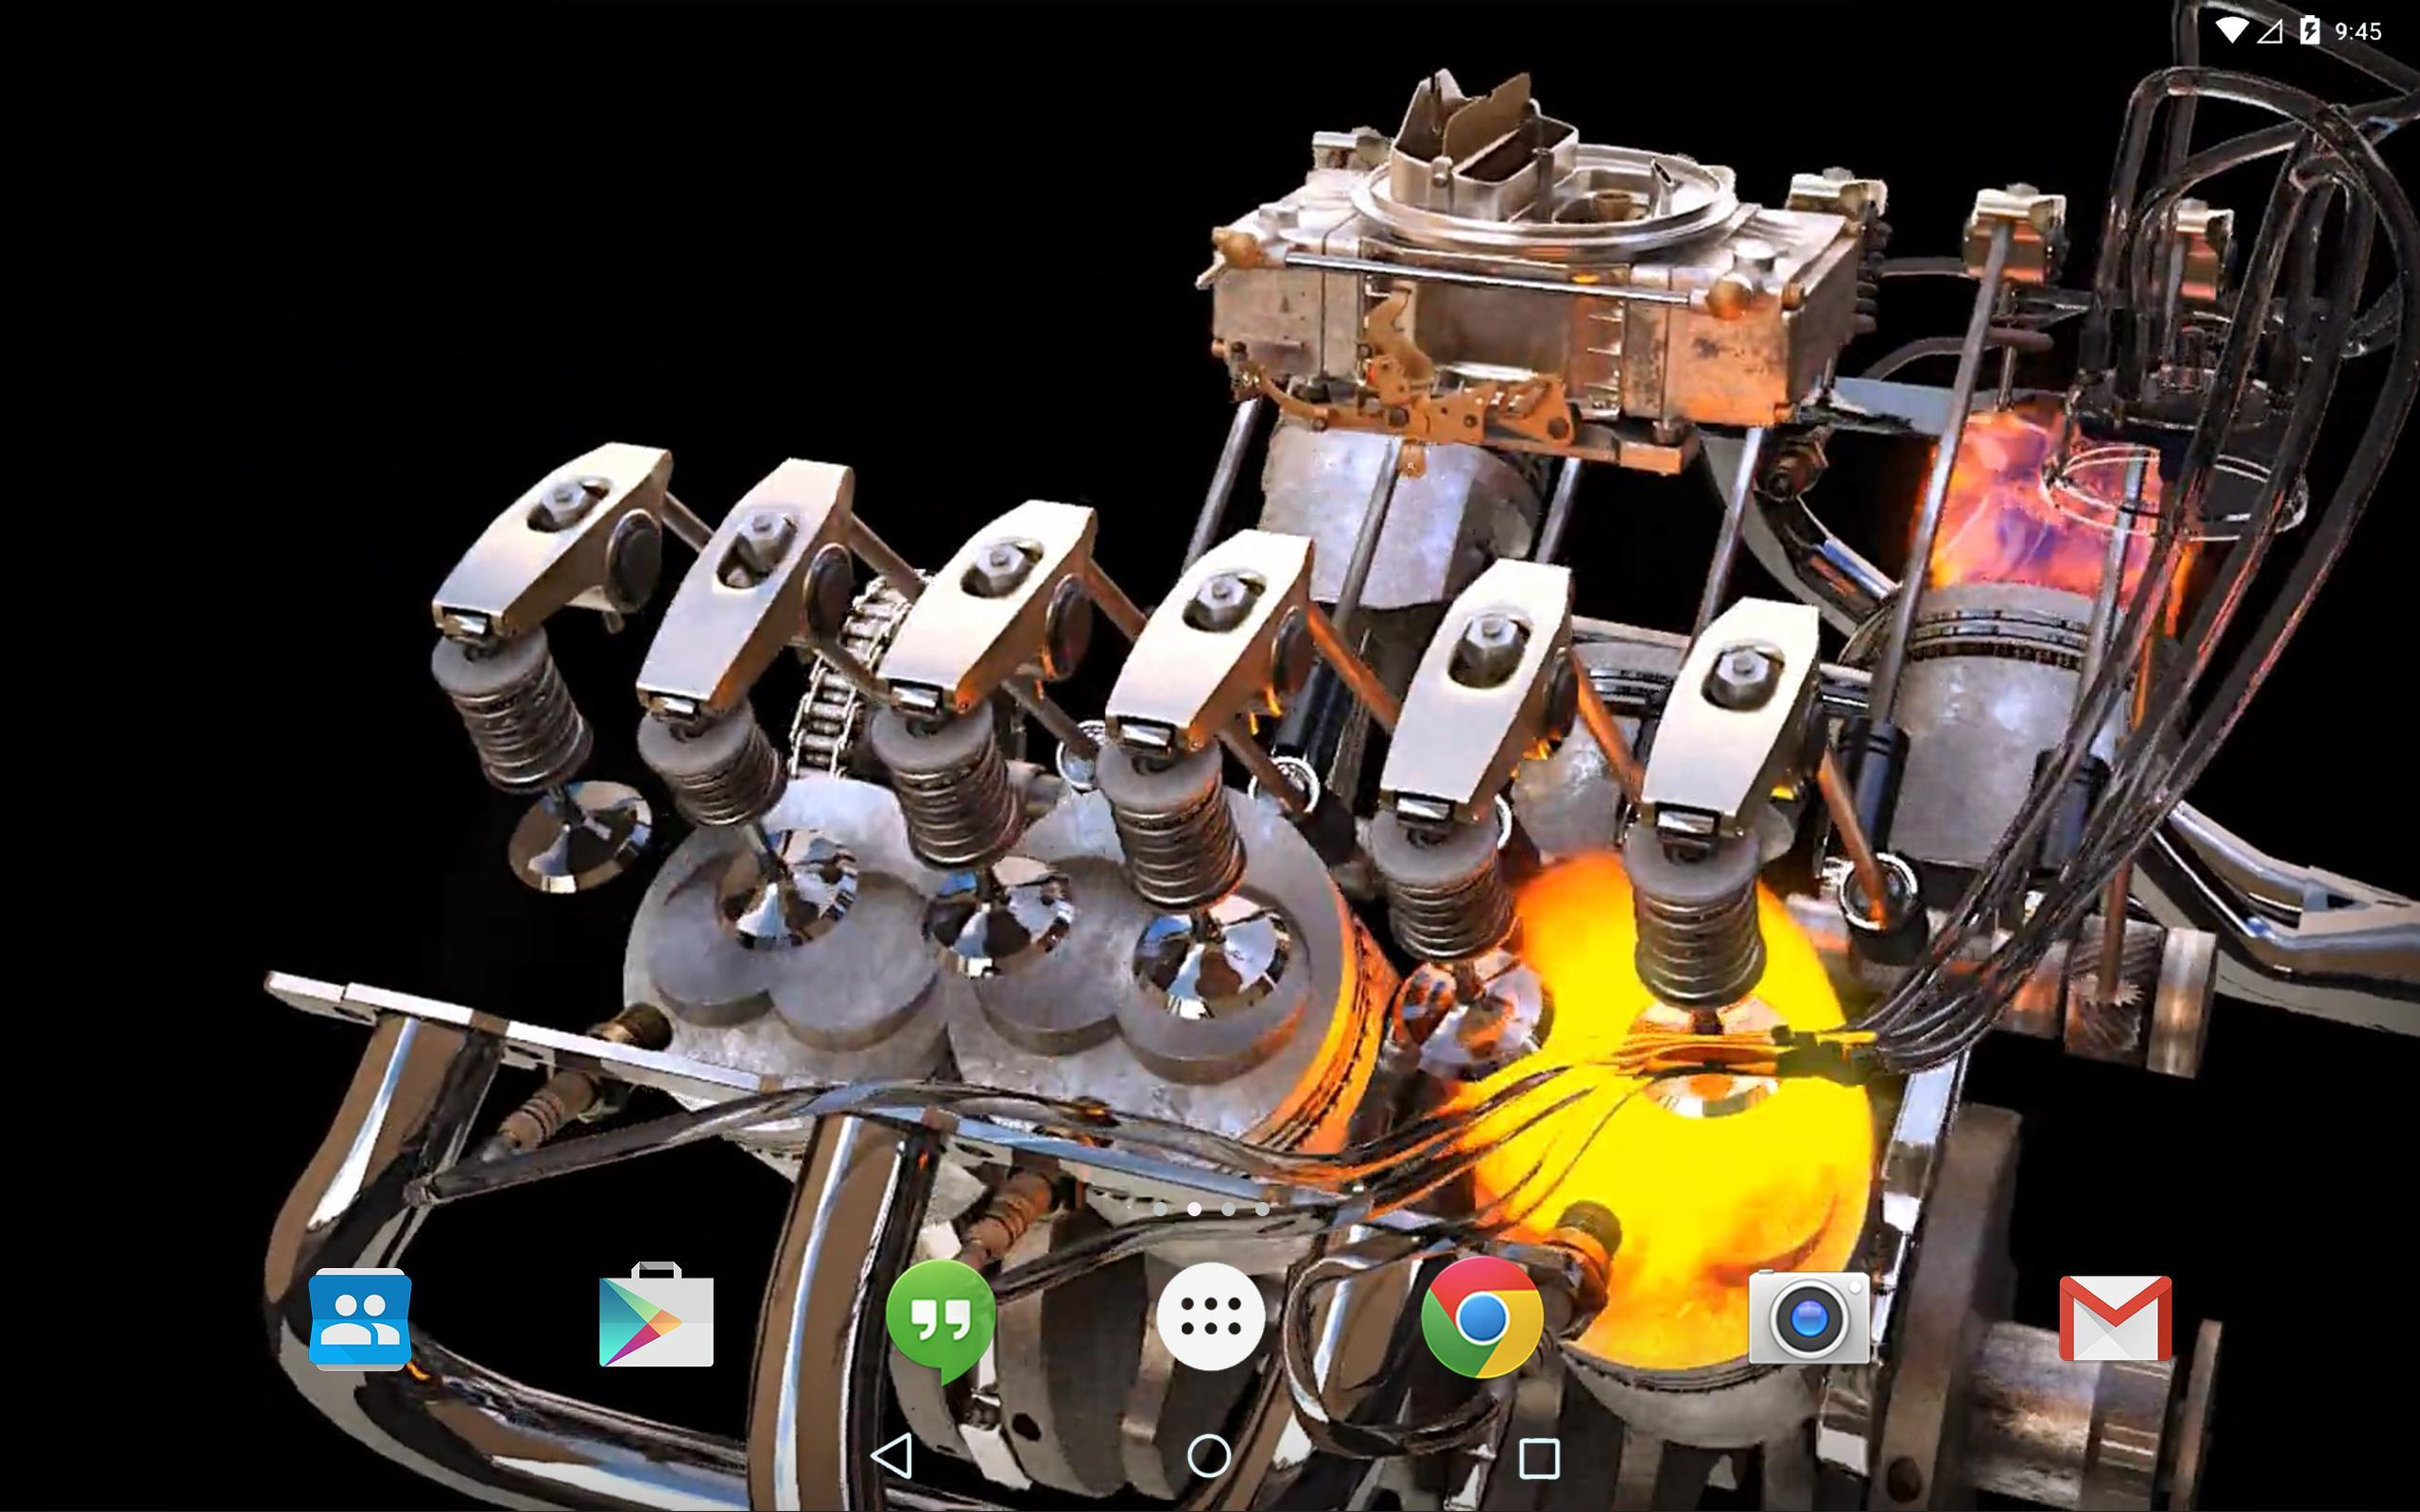 New 3D Engine Live Wallpaper For Android APK Download